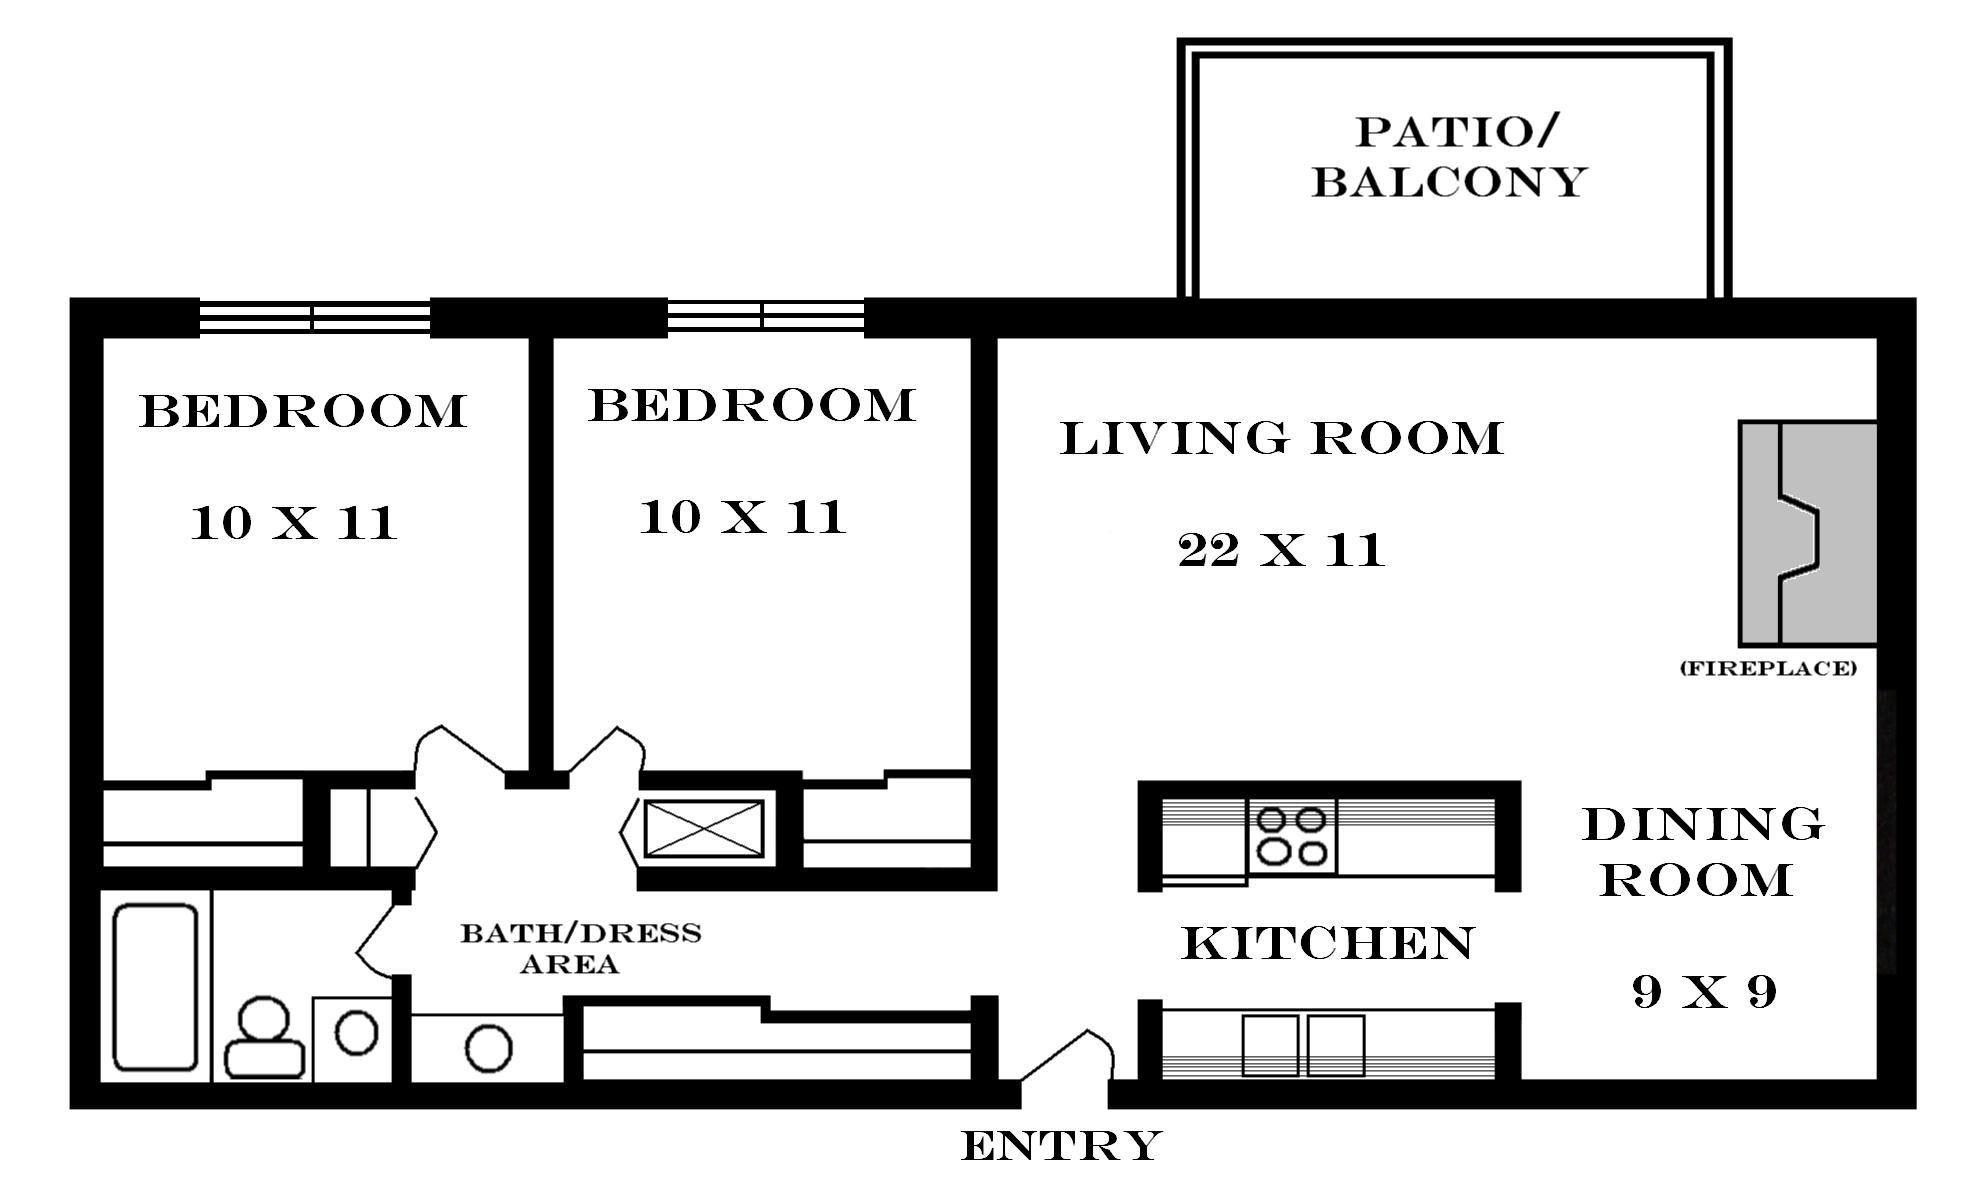 Small house floor plans 2 bedrooms 900 tiny houses for Small house floor plans with garage